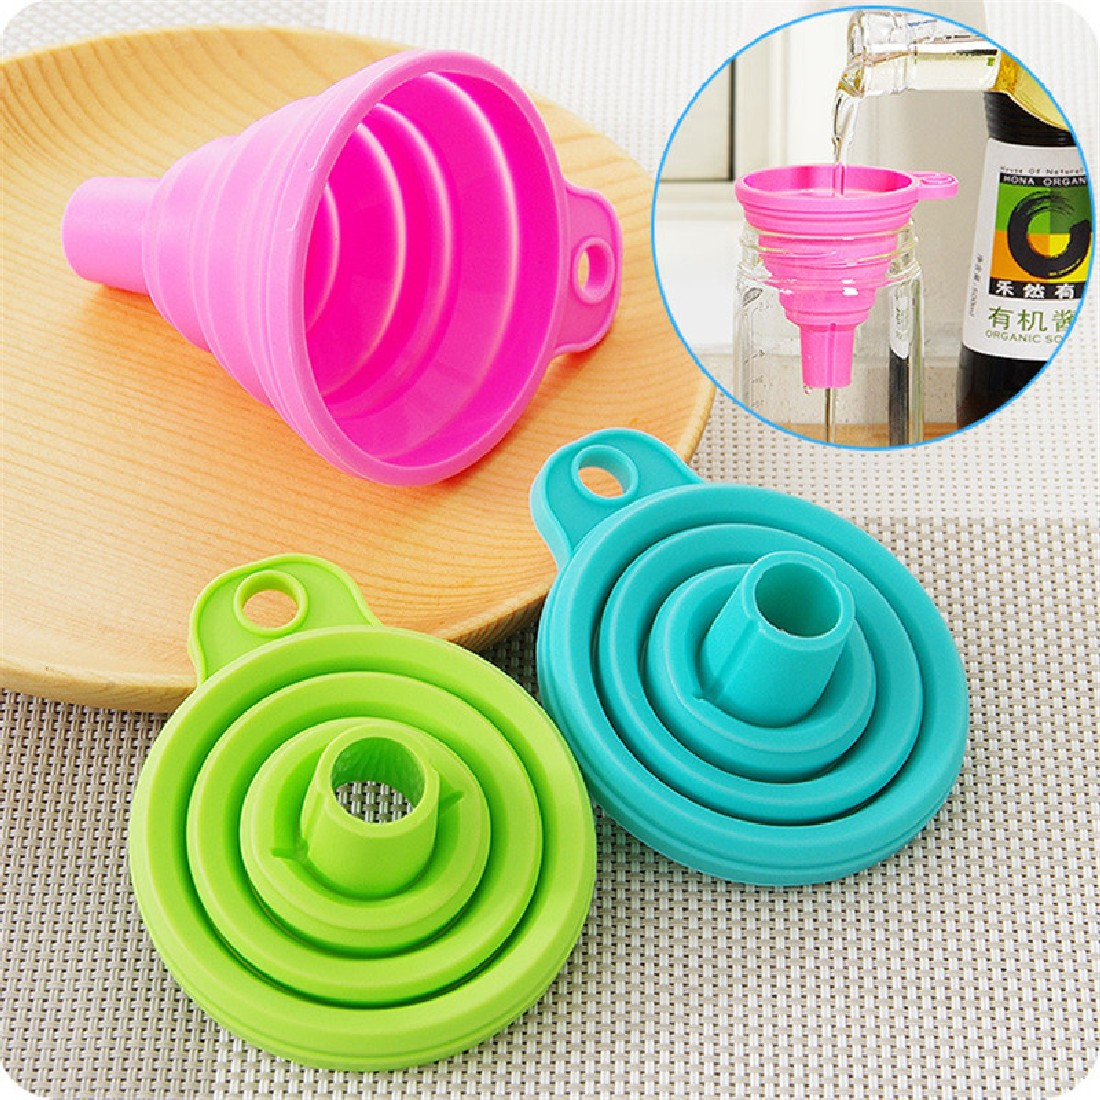 Useful Collapsible Style Funnel Hopper Protable Mini Silicone Gel Foldable Kitchen Cooking Tools Accessories Gadgets